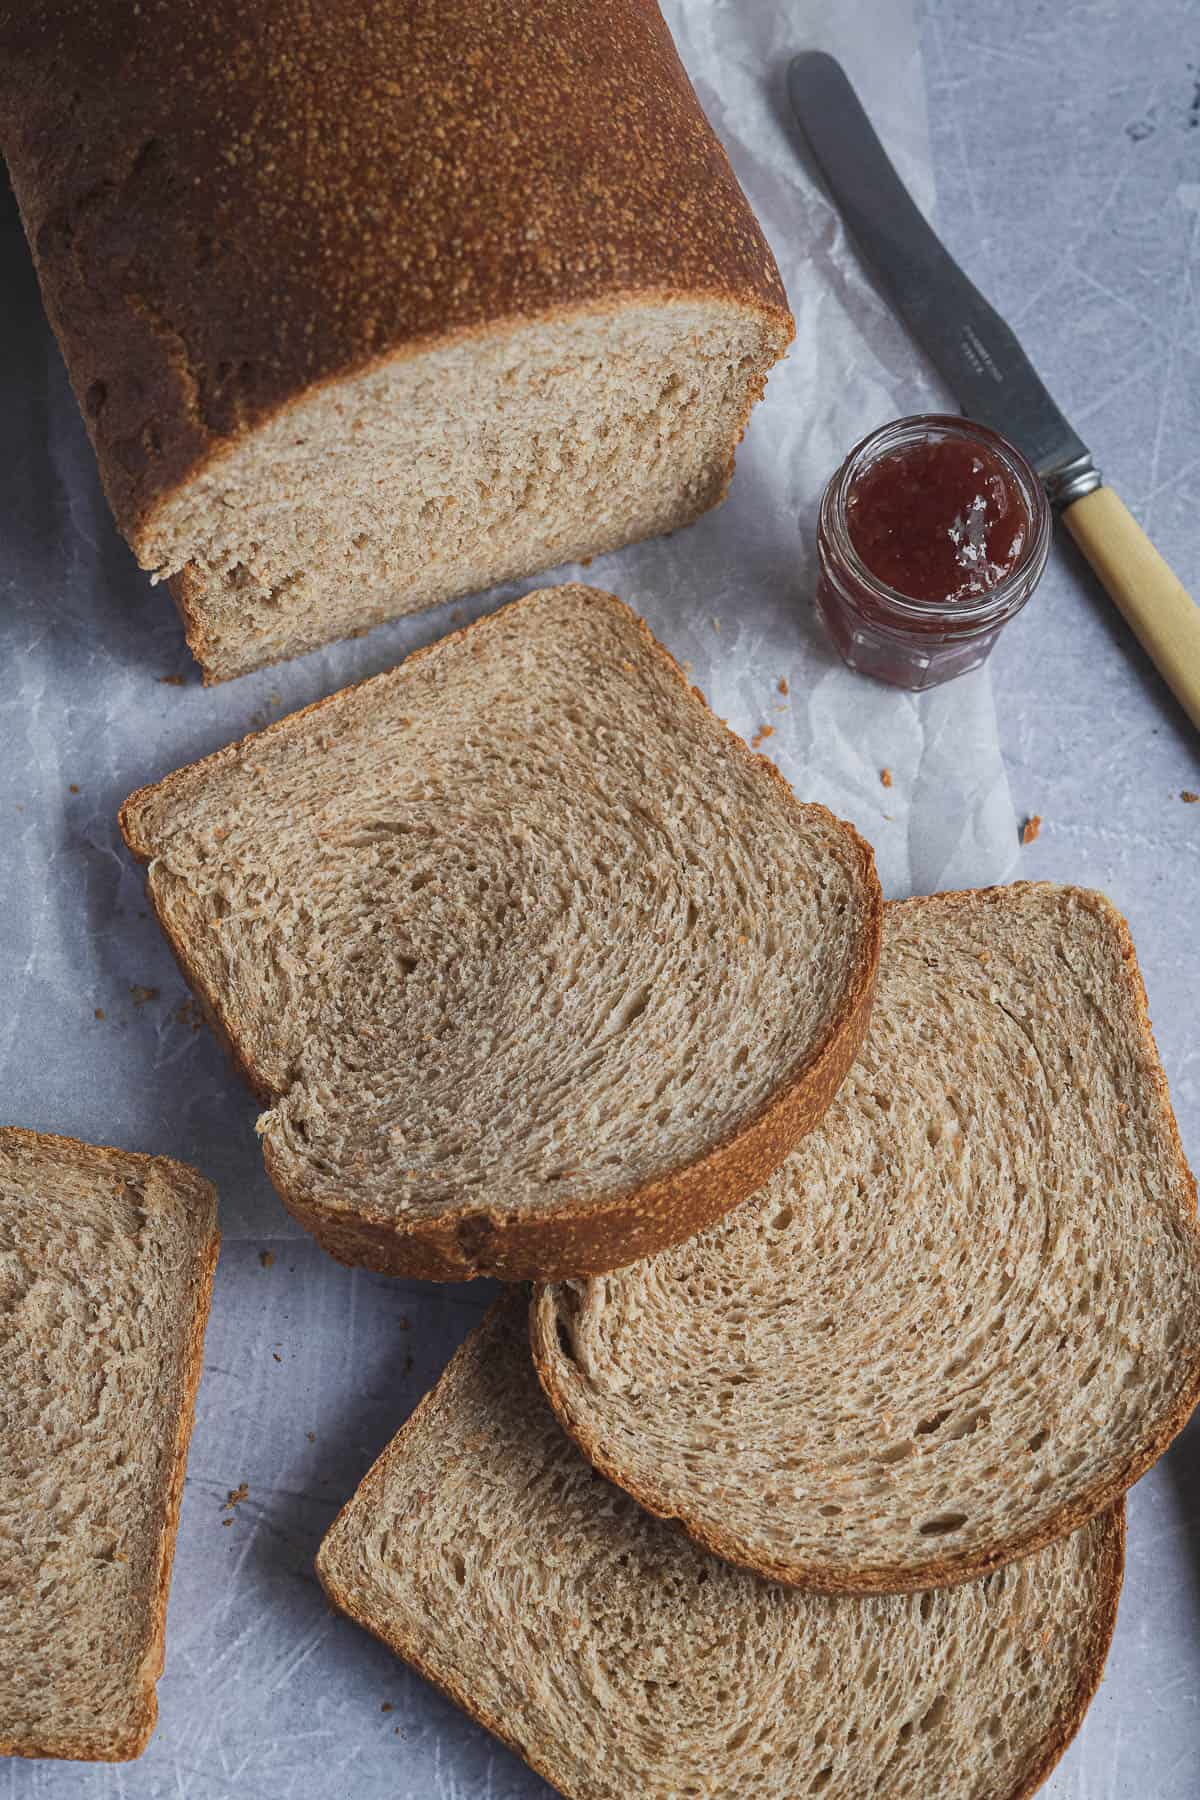 Sliced wholemeal sandwich bread on a sheet of white baking parchment with a jar of jam and a knife.